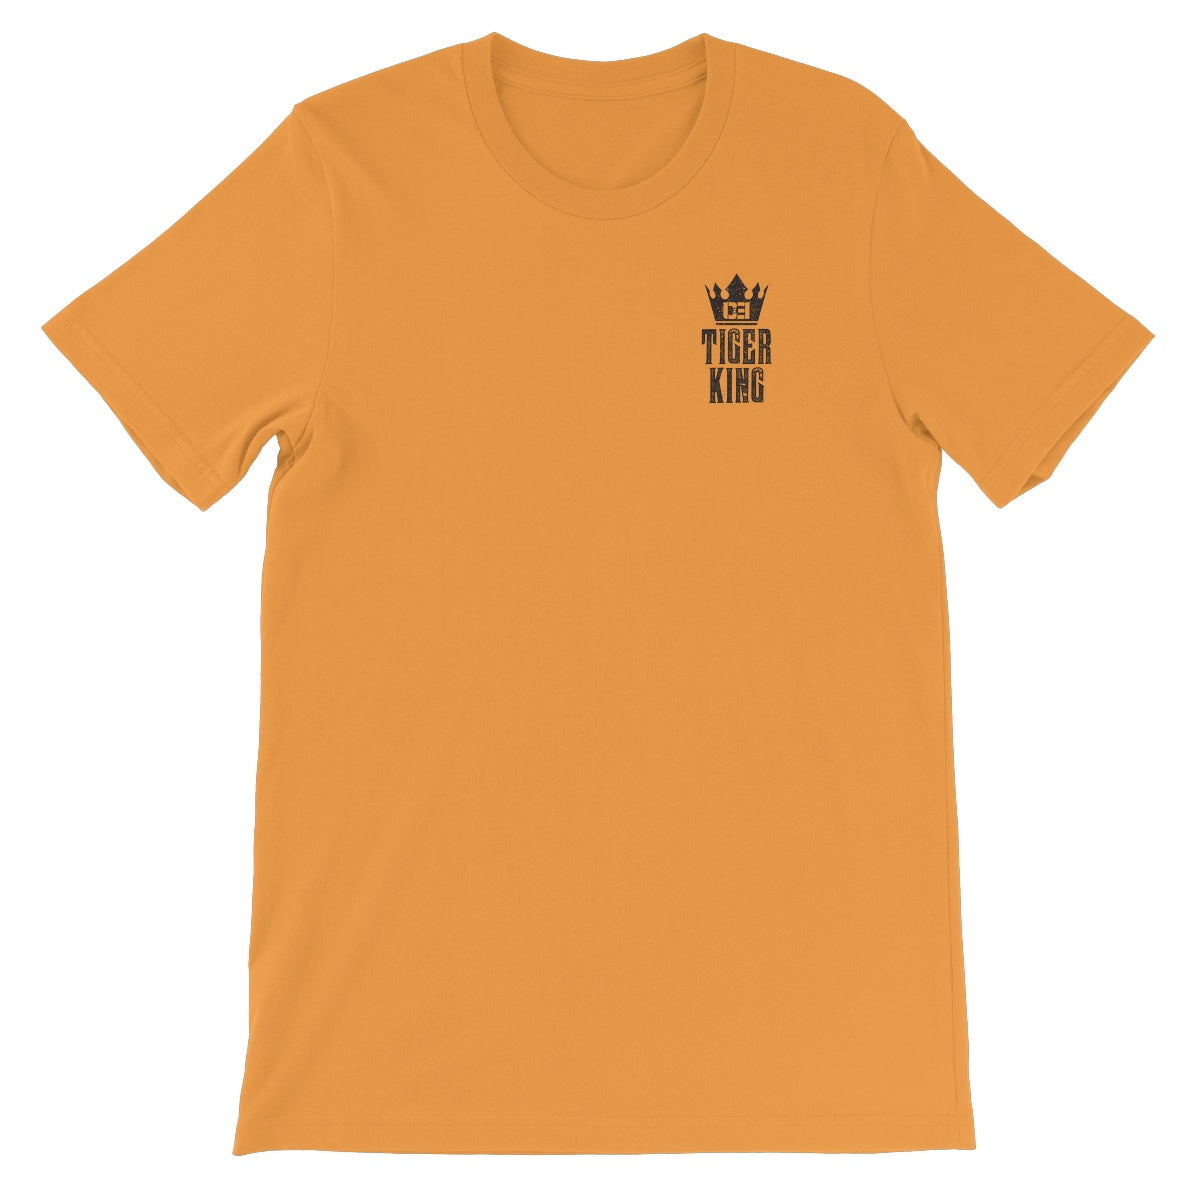 Tiger King CxE Unisex Short Sleeve T-Shirt